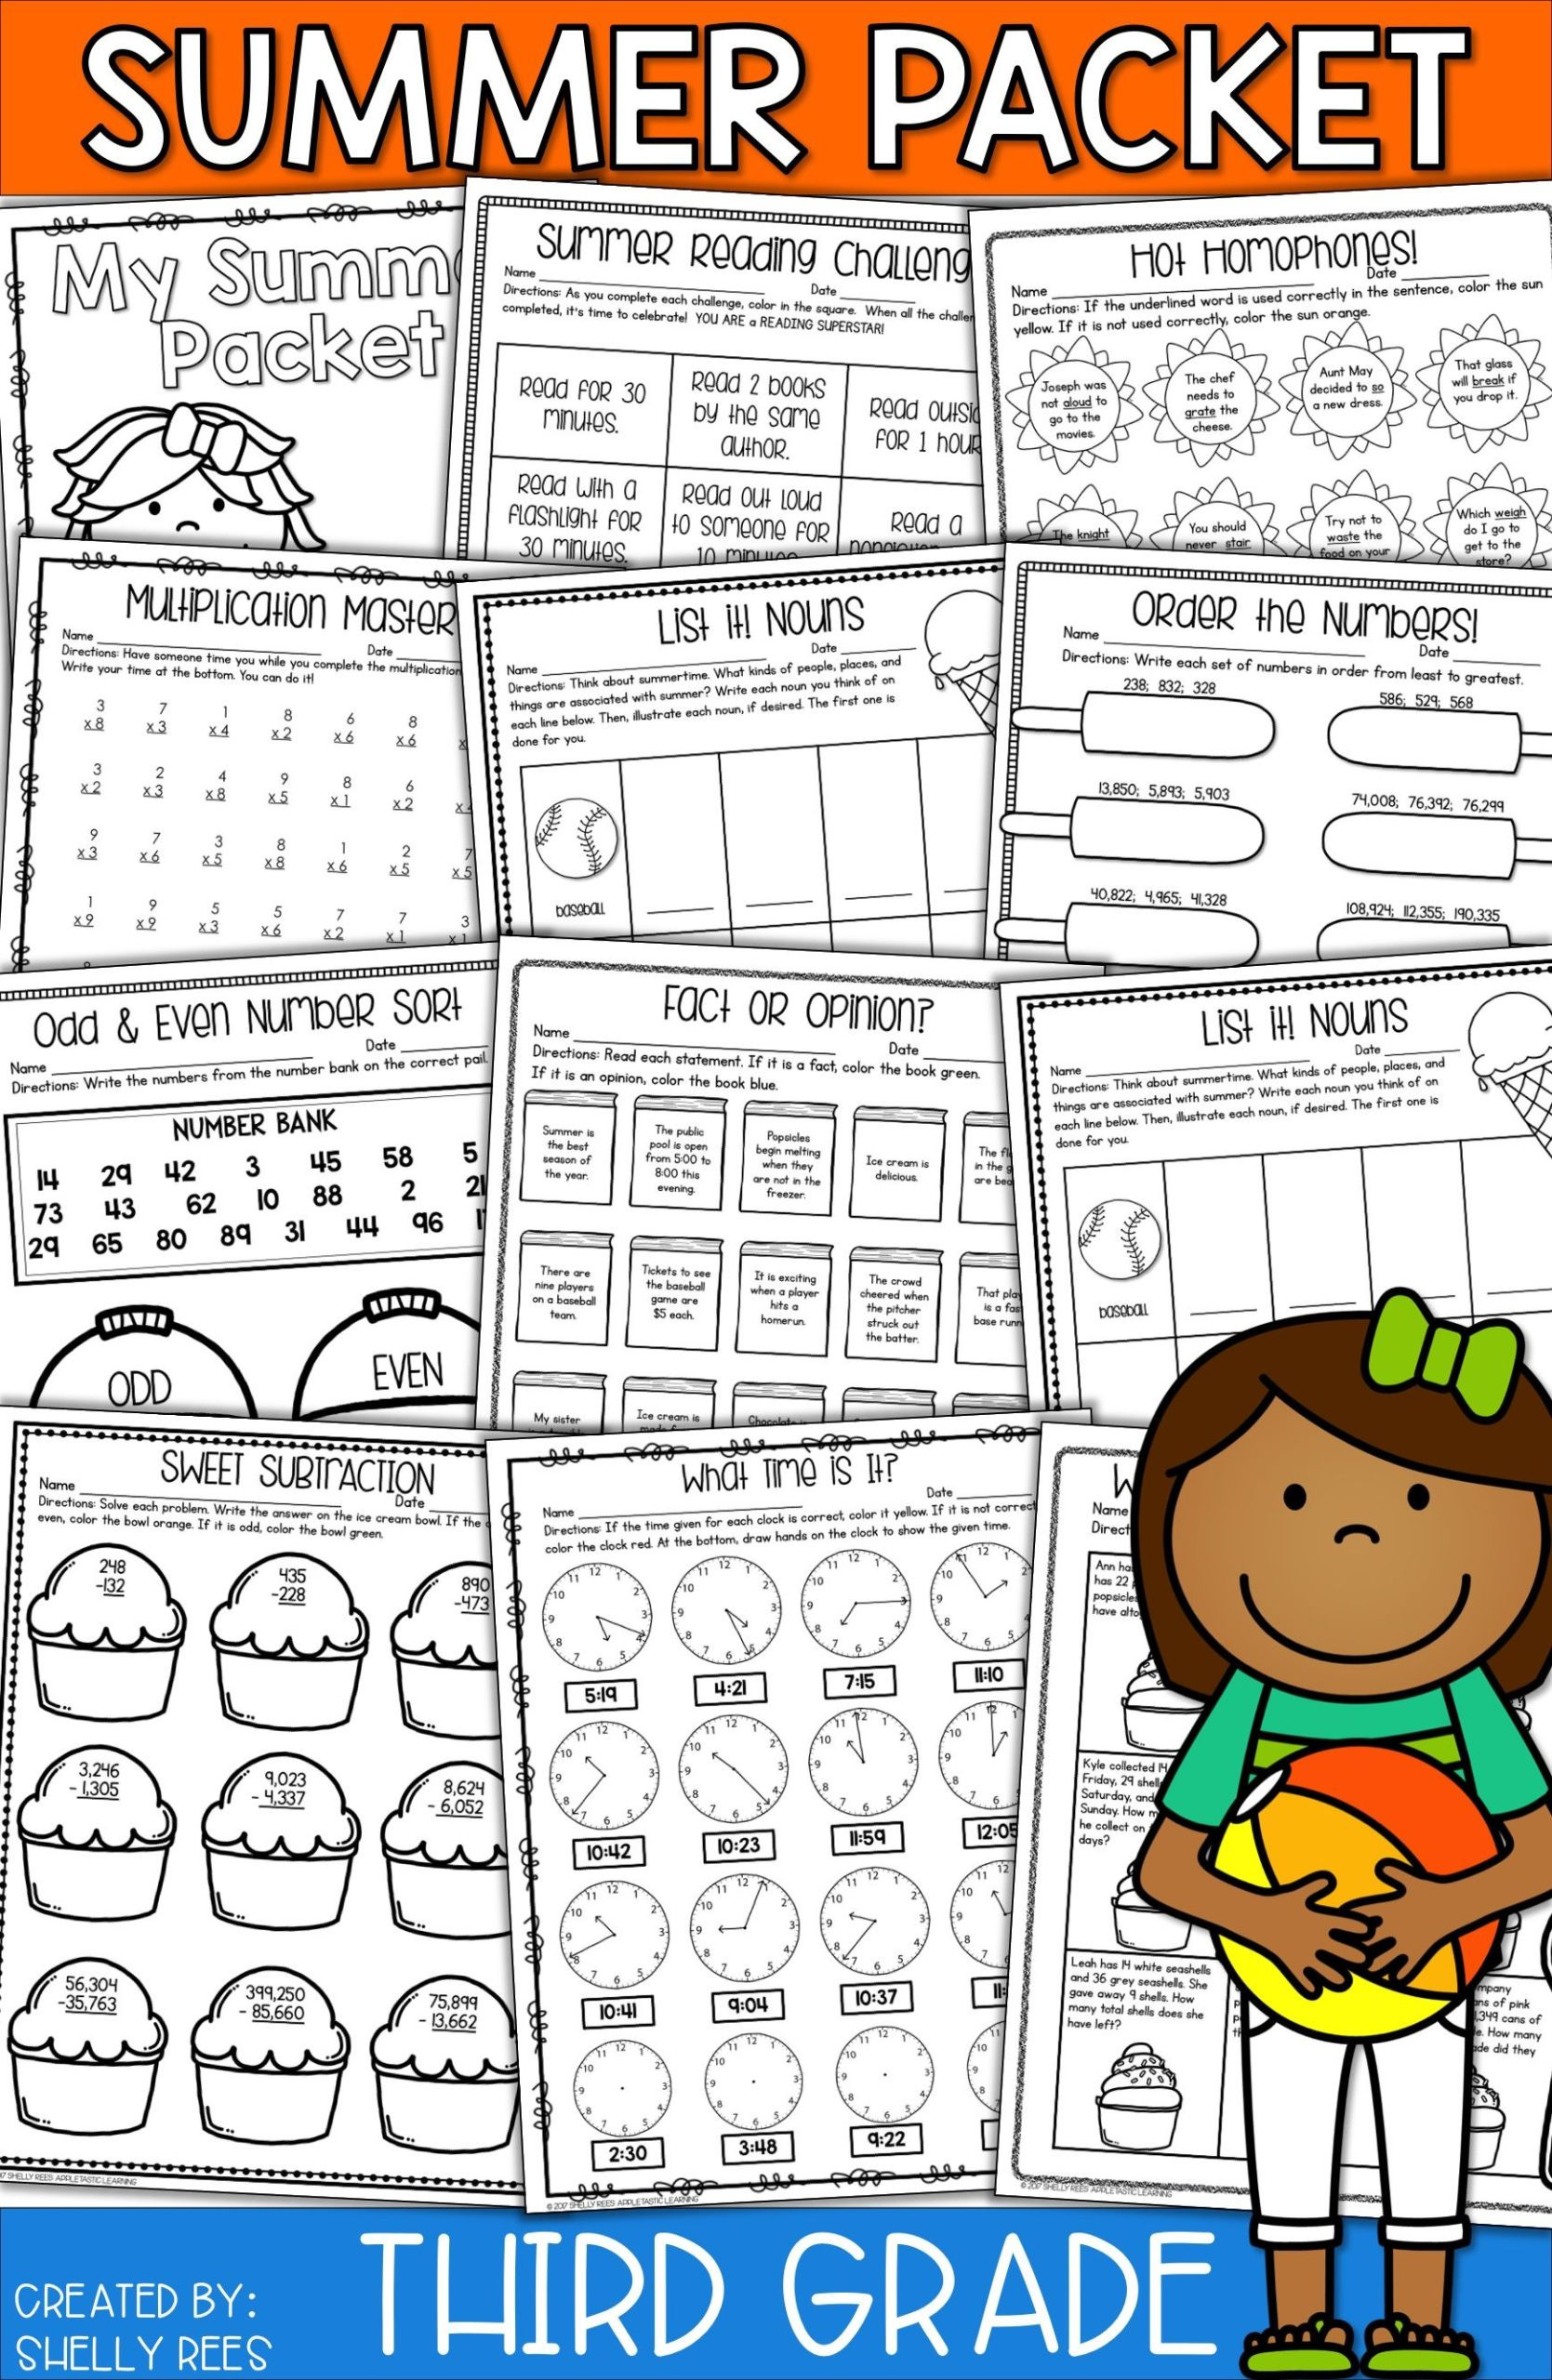 Energy Worksheets for 3rd Grade Summer Packet for Third Going to Fourth Grade Math with Fun